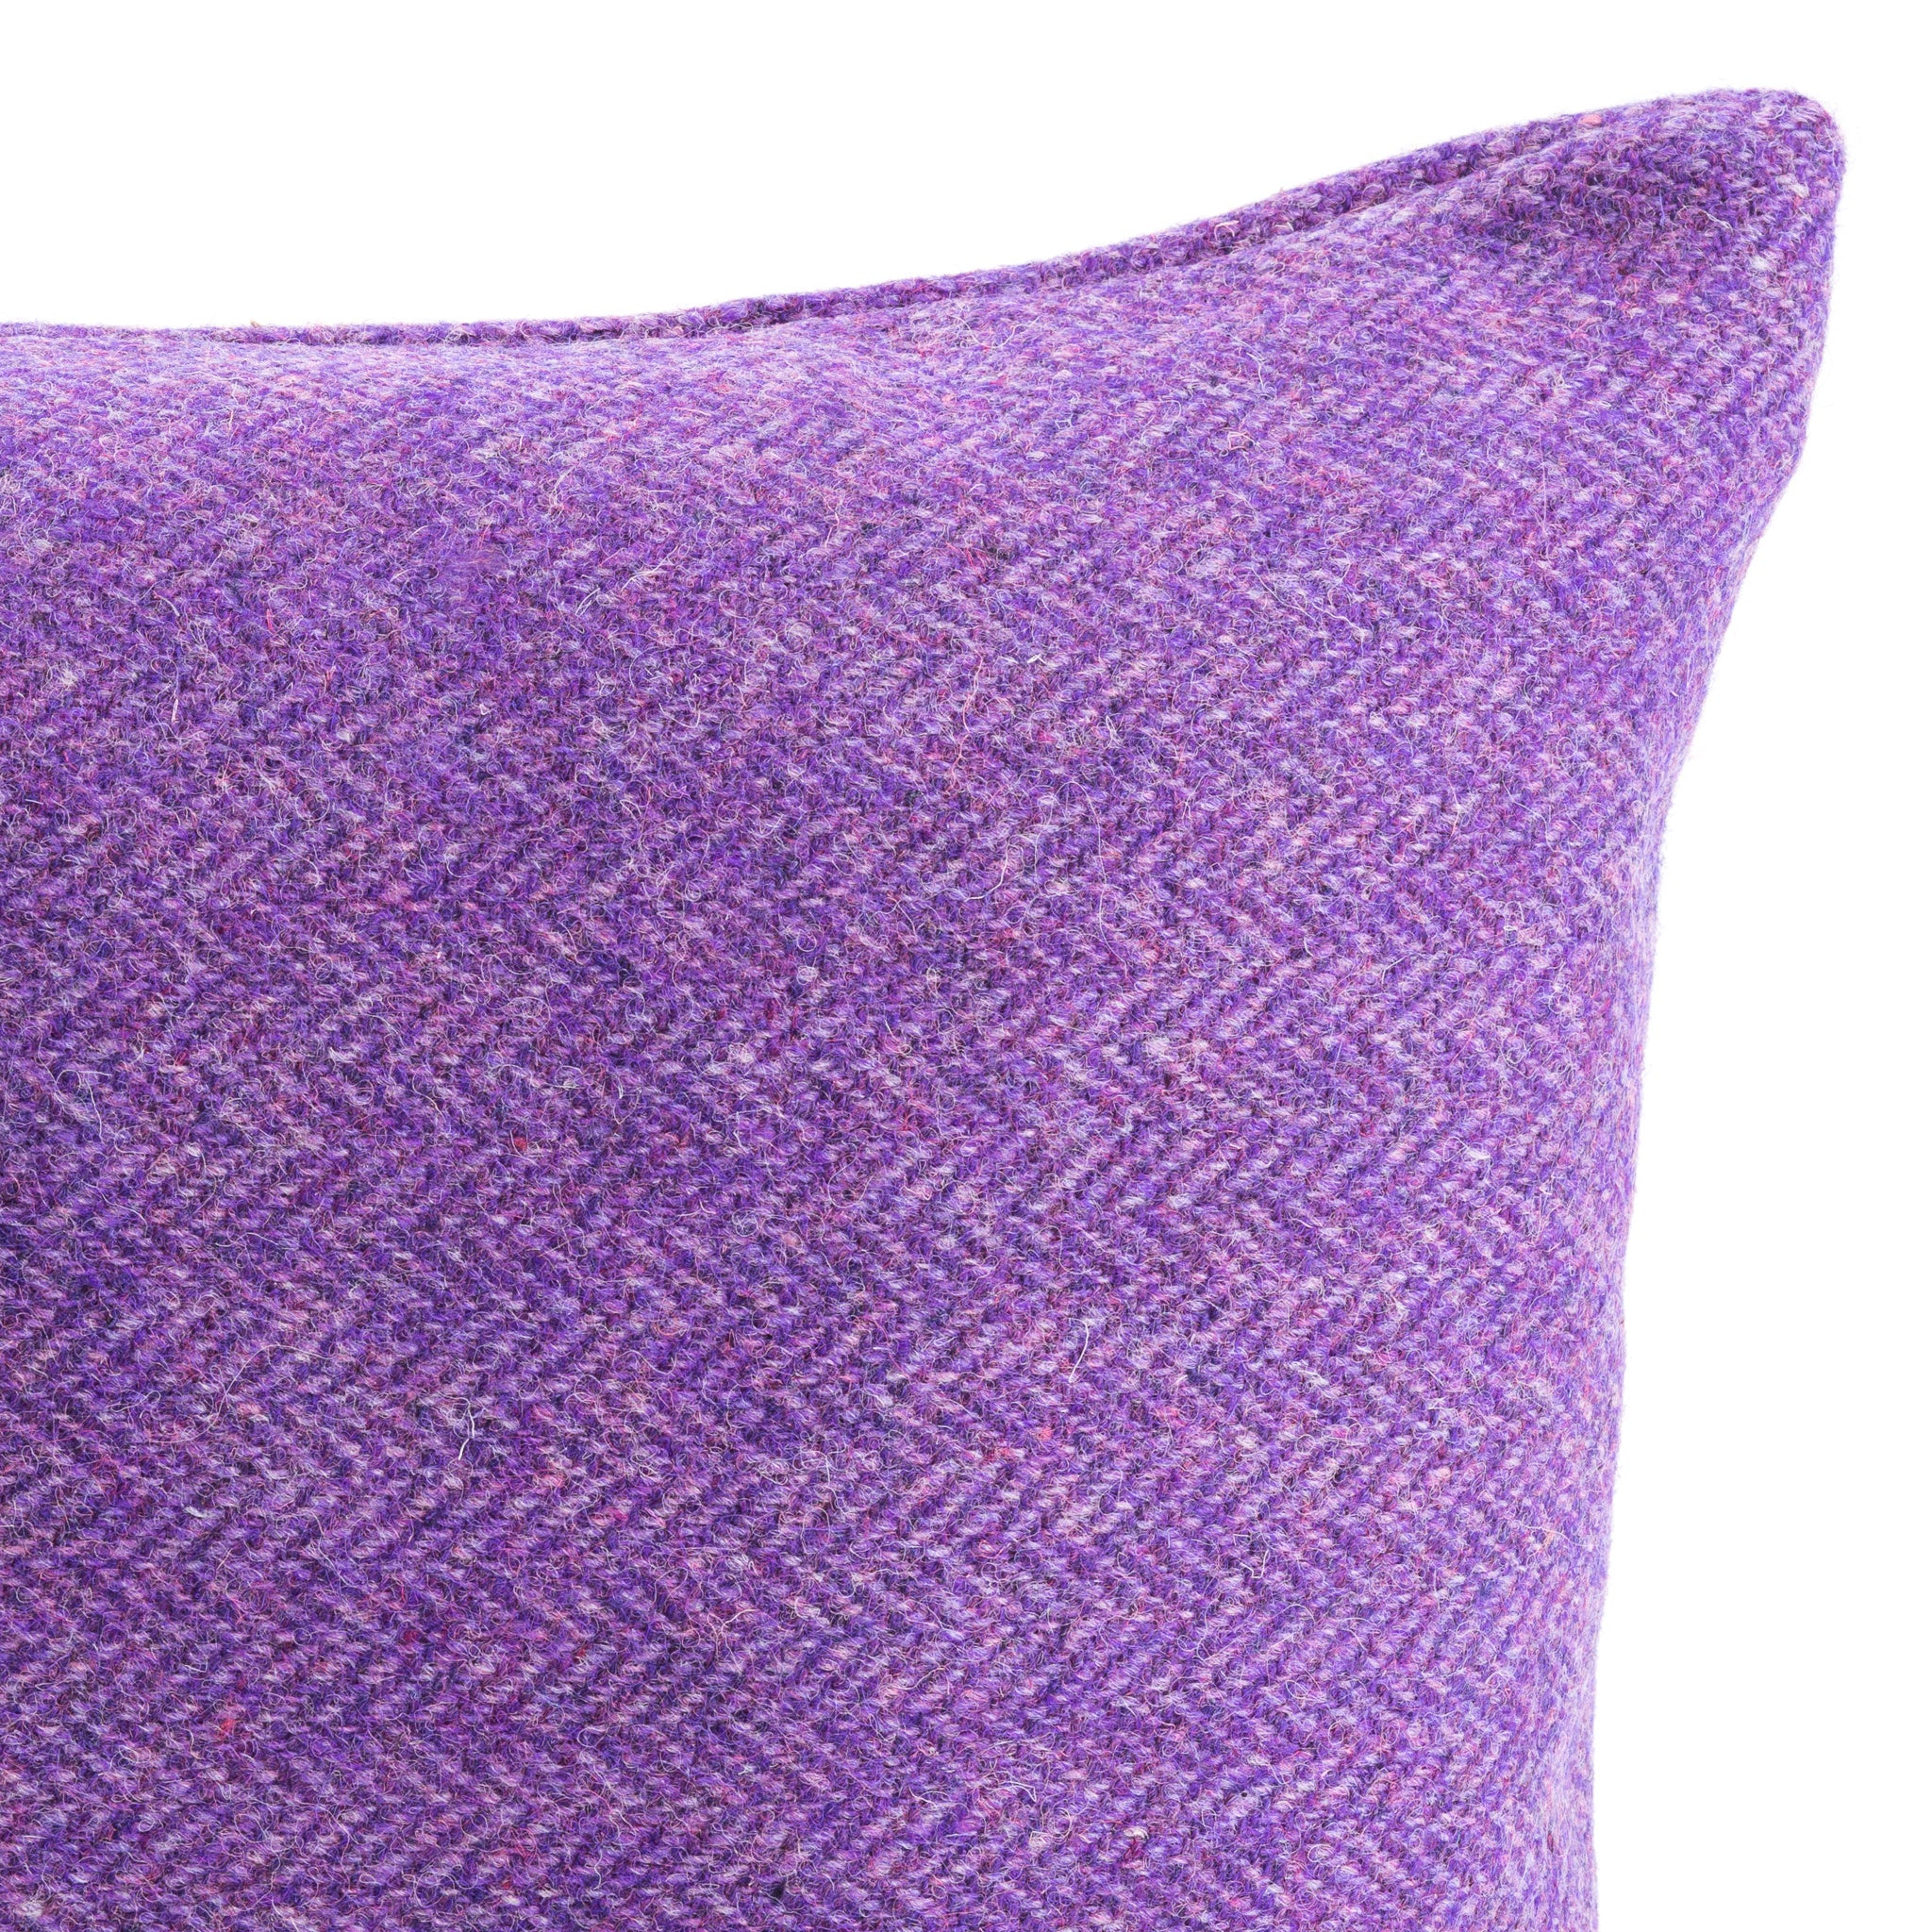 Harris Tweed/Pure Wool/Purple/Violet/Herringbone/Outer Hebrides/Scatter/ Cushion/Back